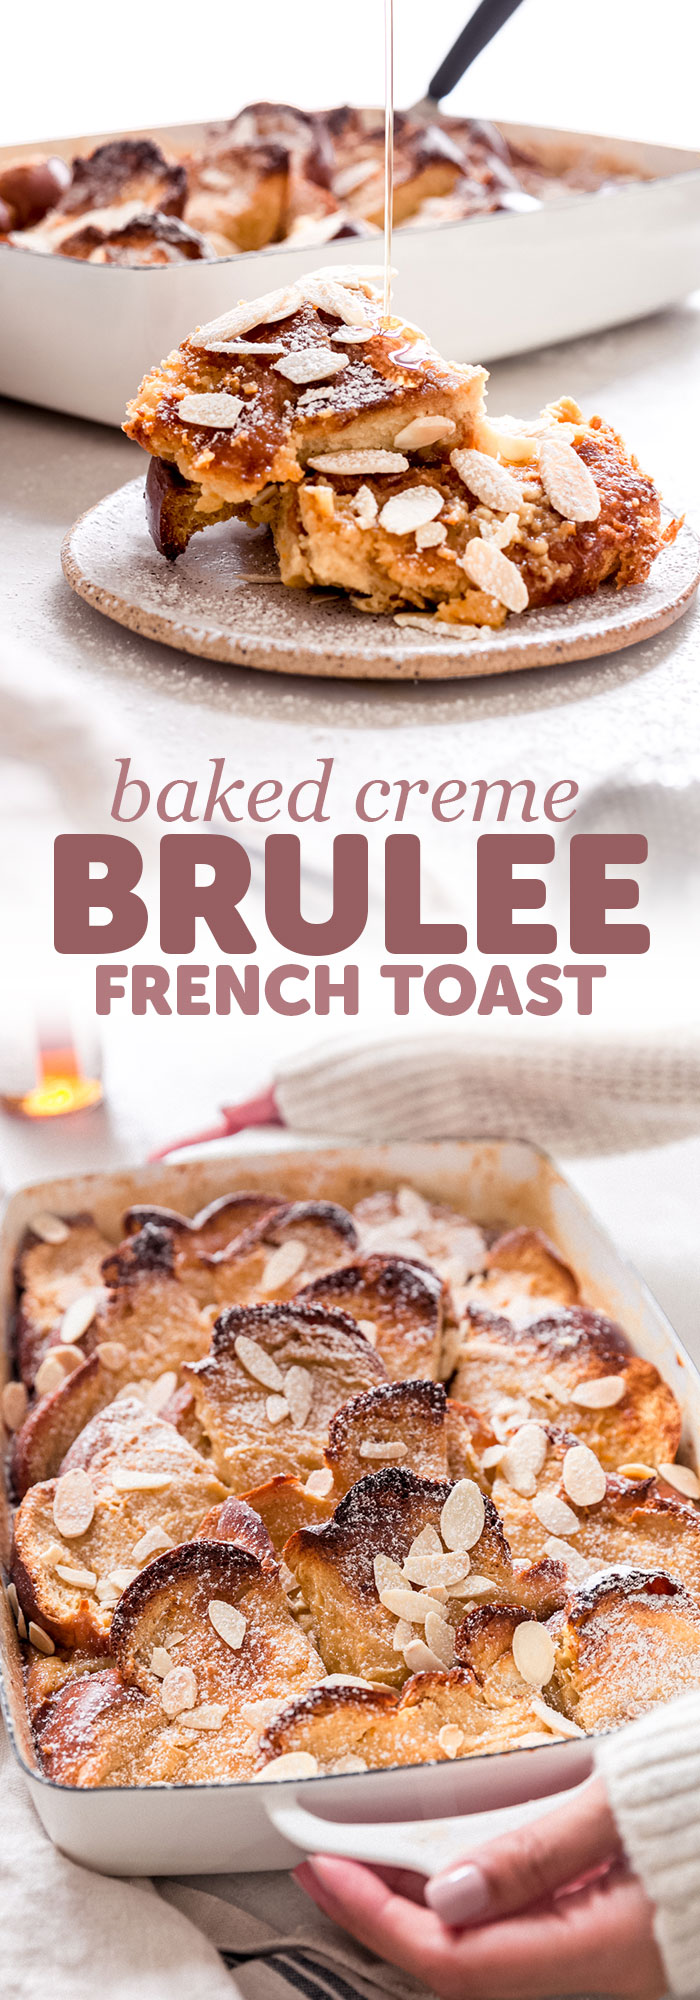 Baked Creme Brulee French Toast - The easiest baked creme brulee french toast recipe, and it feeds a crowd! The bottom is loaded with a caramel glaze, and the custard is rich and creamy! The best part is, you can make it ahead #cremebrulee #frenchtoast #bakedfrenchtoast #cremebruleefrenchtoast #frenchtoastcasserole | Littlespicejar.com